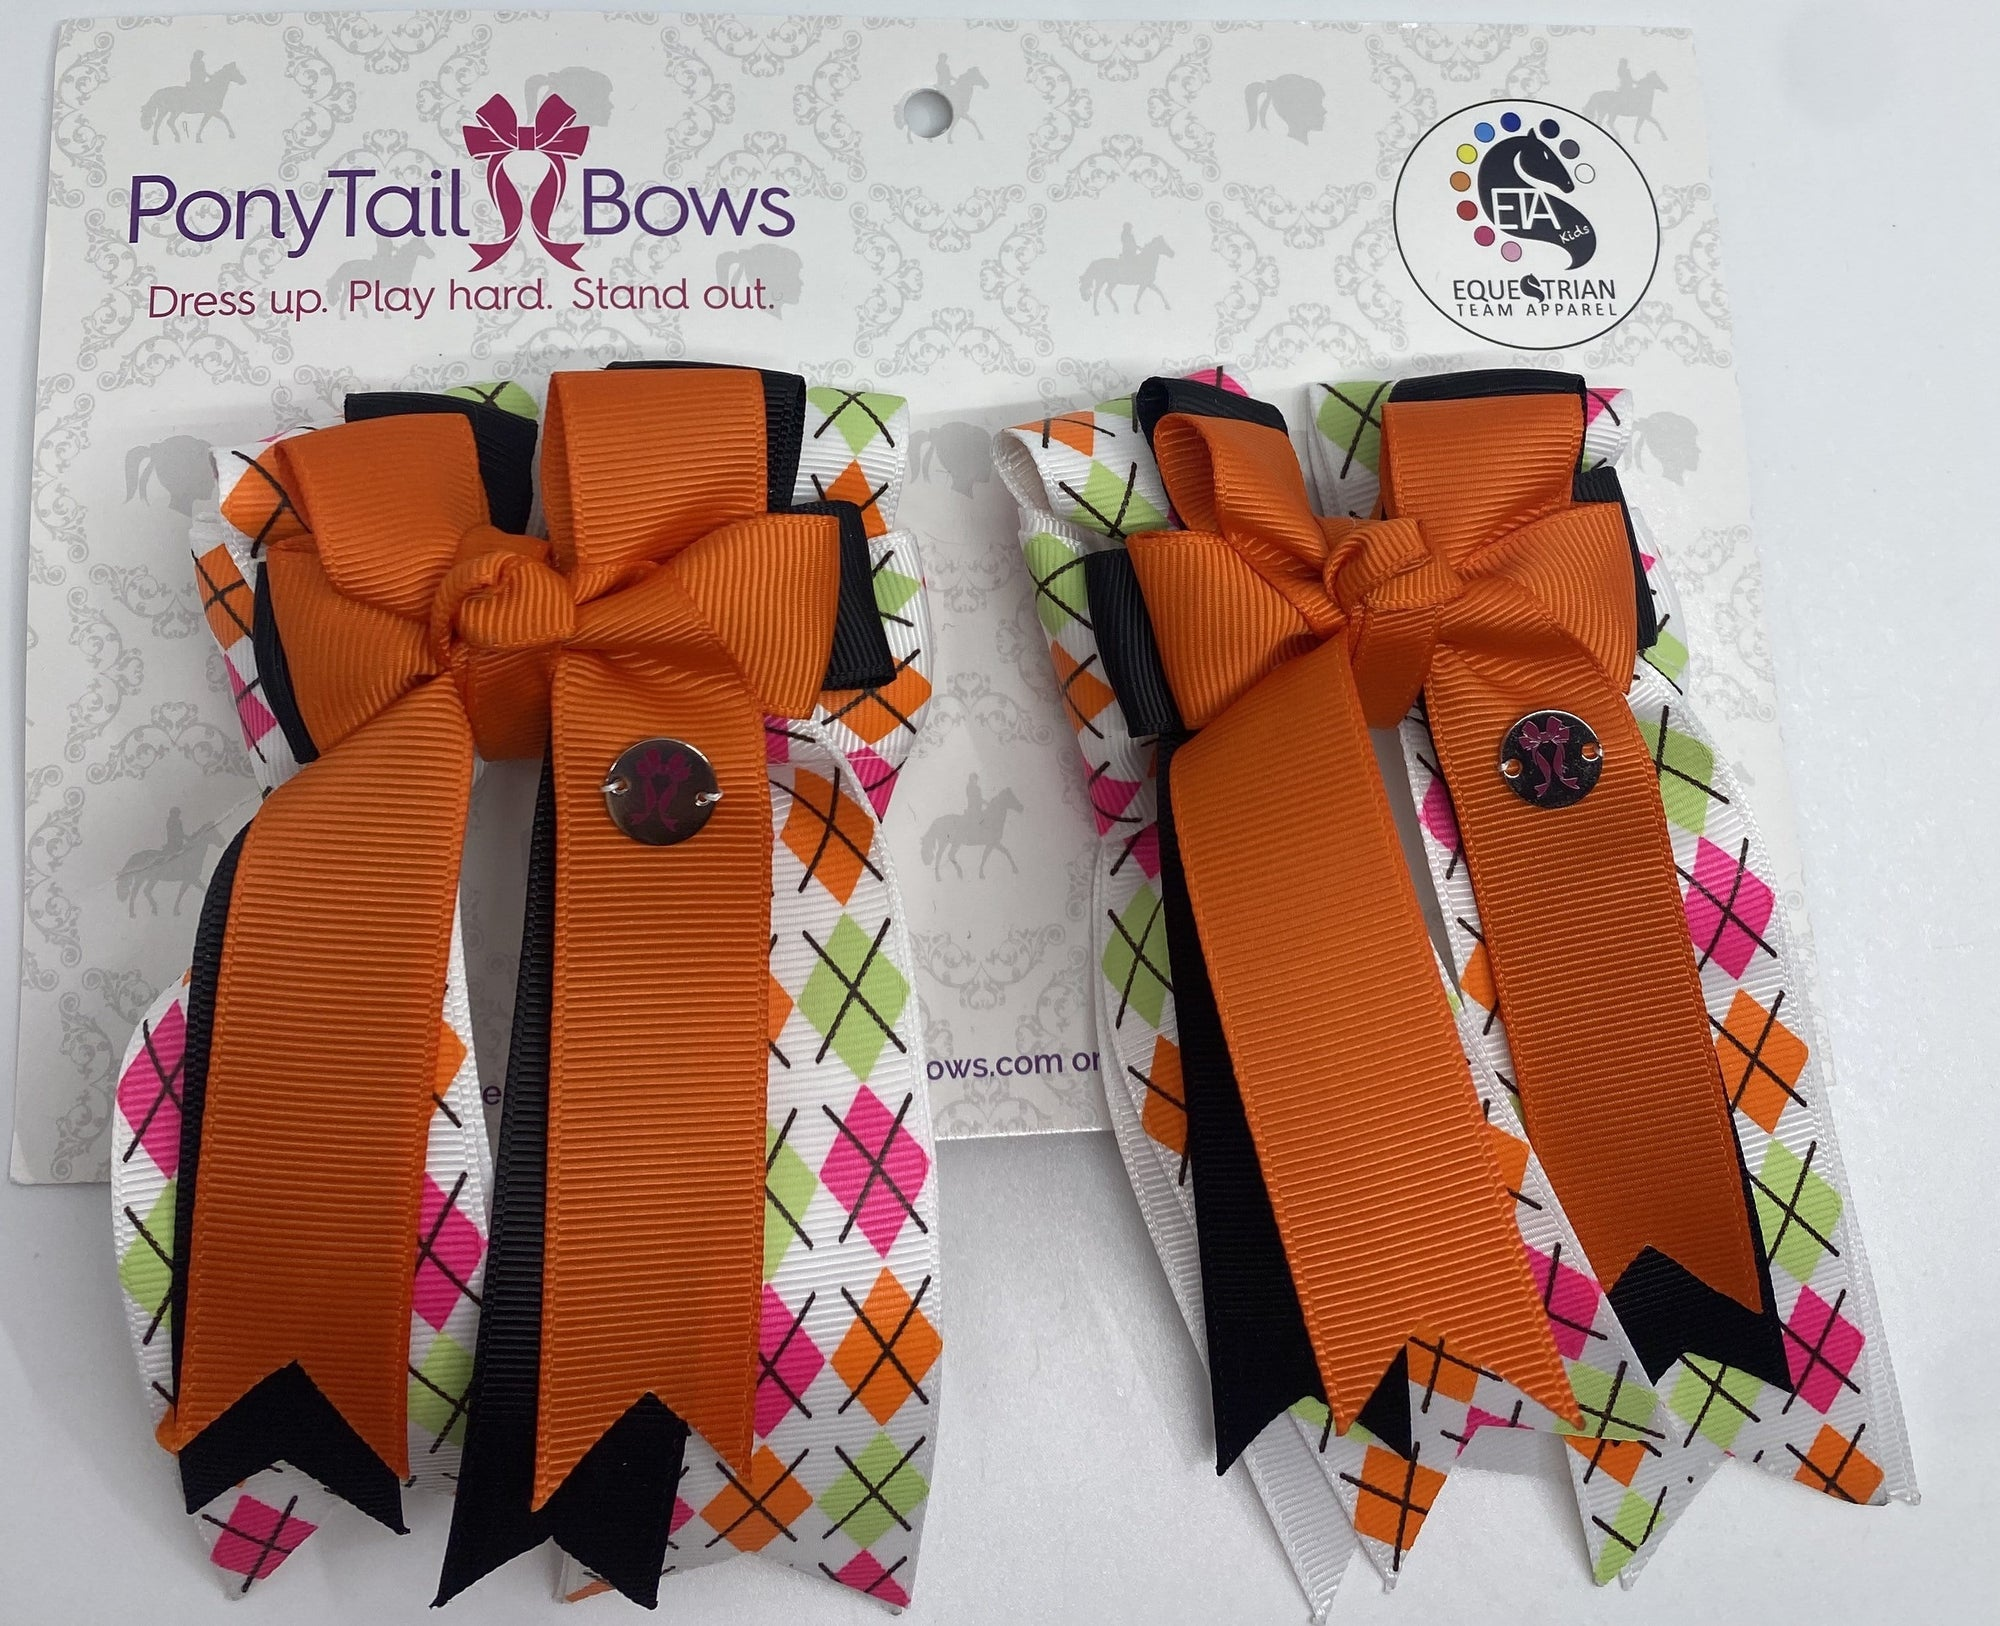 "PonyTail Bows 3"" Tails Argyle Orange/Black PonyTail Bows equestrian team apparel online tack store mobile tack store custom farm apparel custom show stable clothing equestrian lifestyle horse show clothing riding clothes PonyTail Bows 